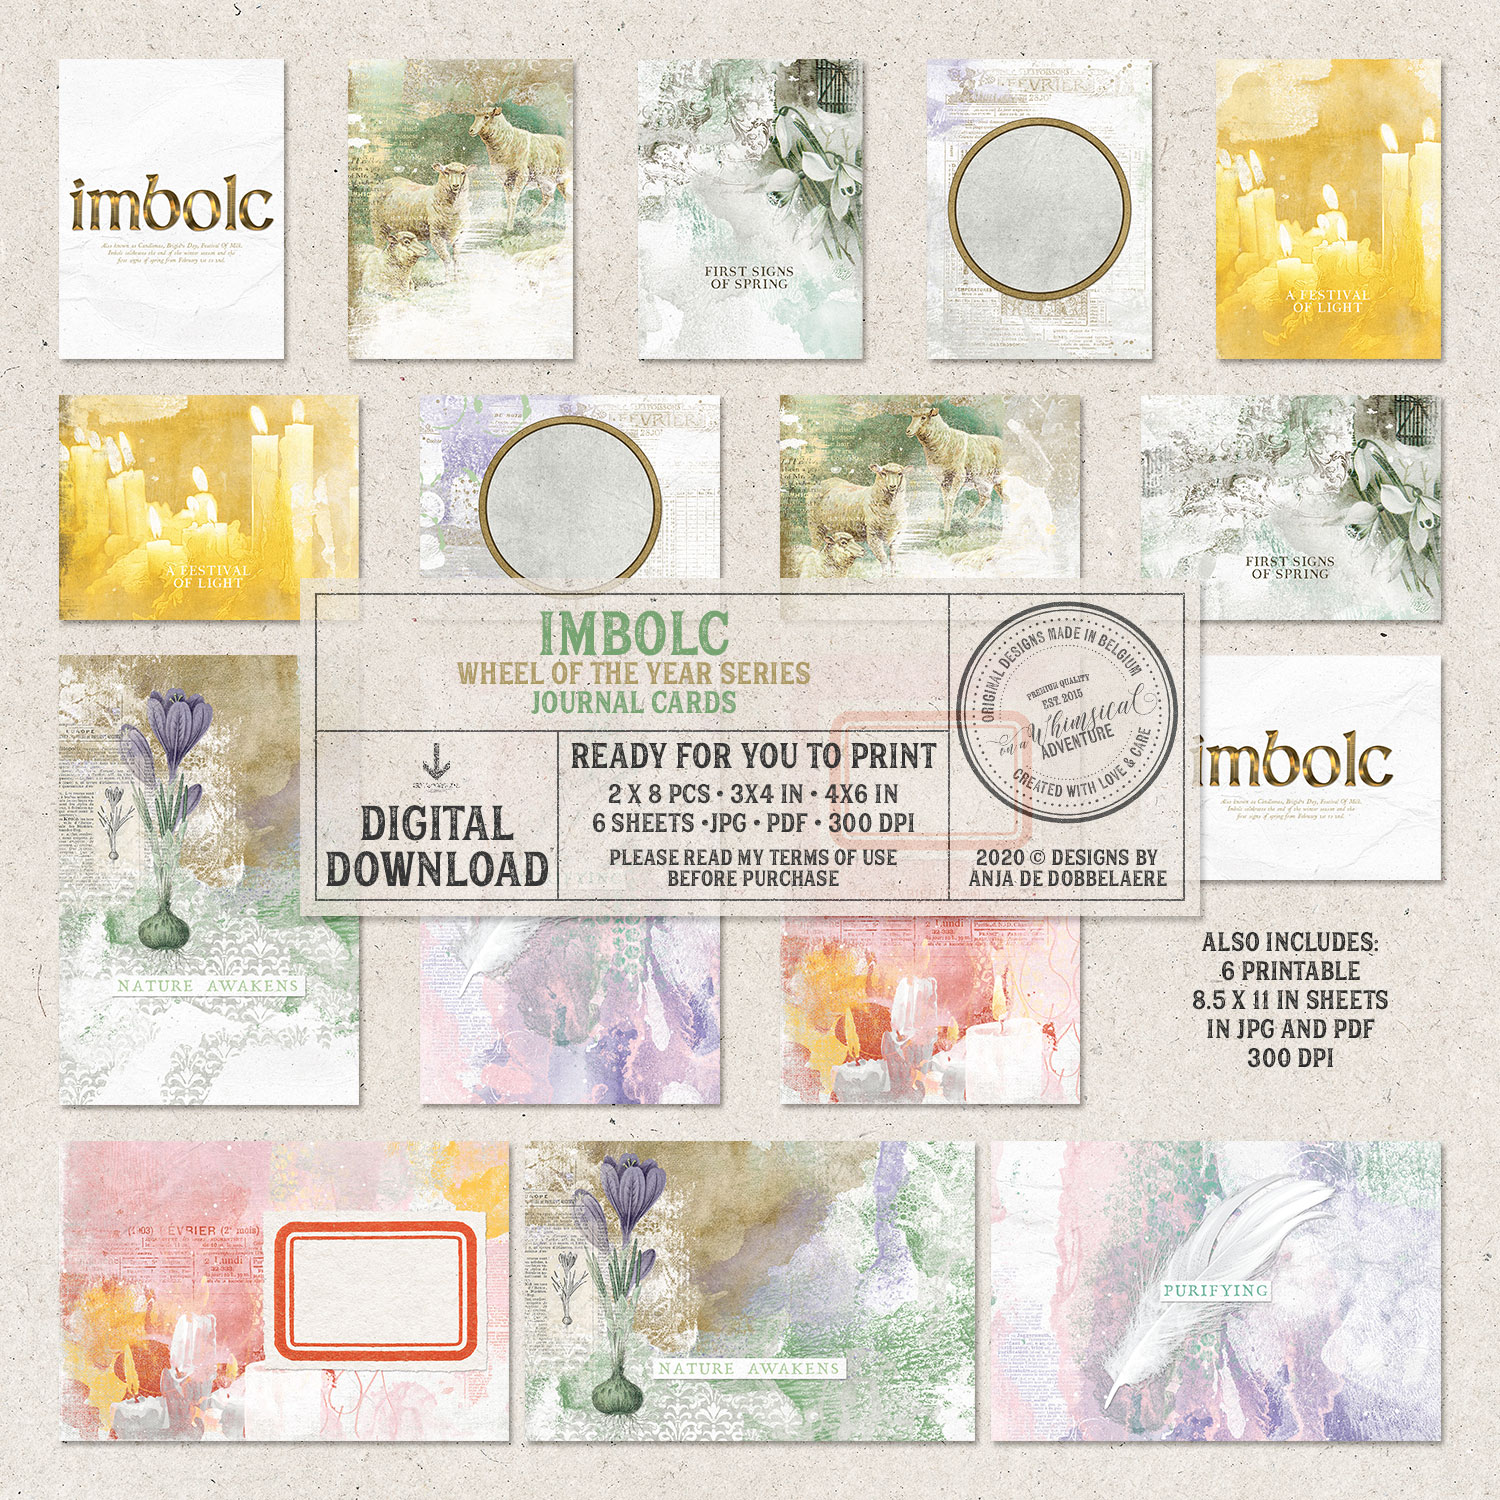 Wheel Of The Year Imbolc Journal Cards by On A Whimsical Adventure